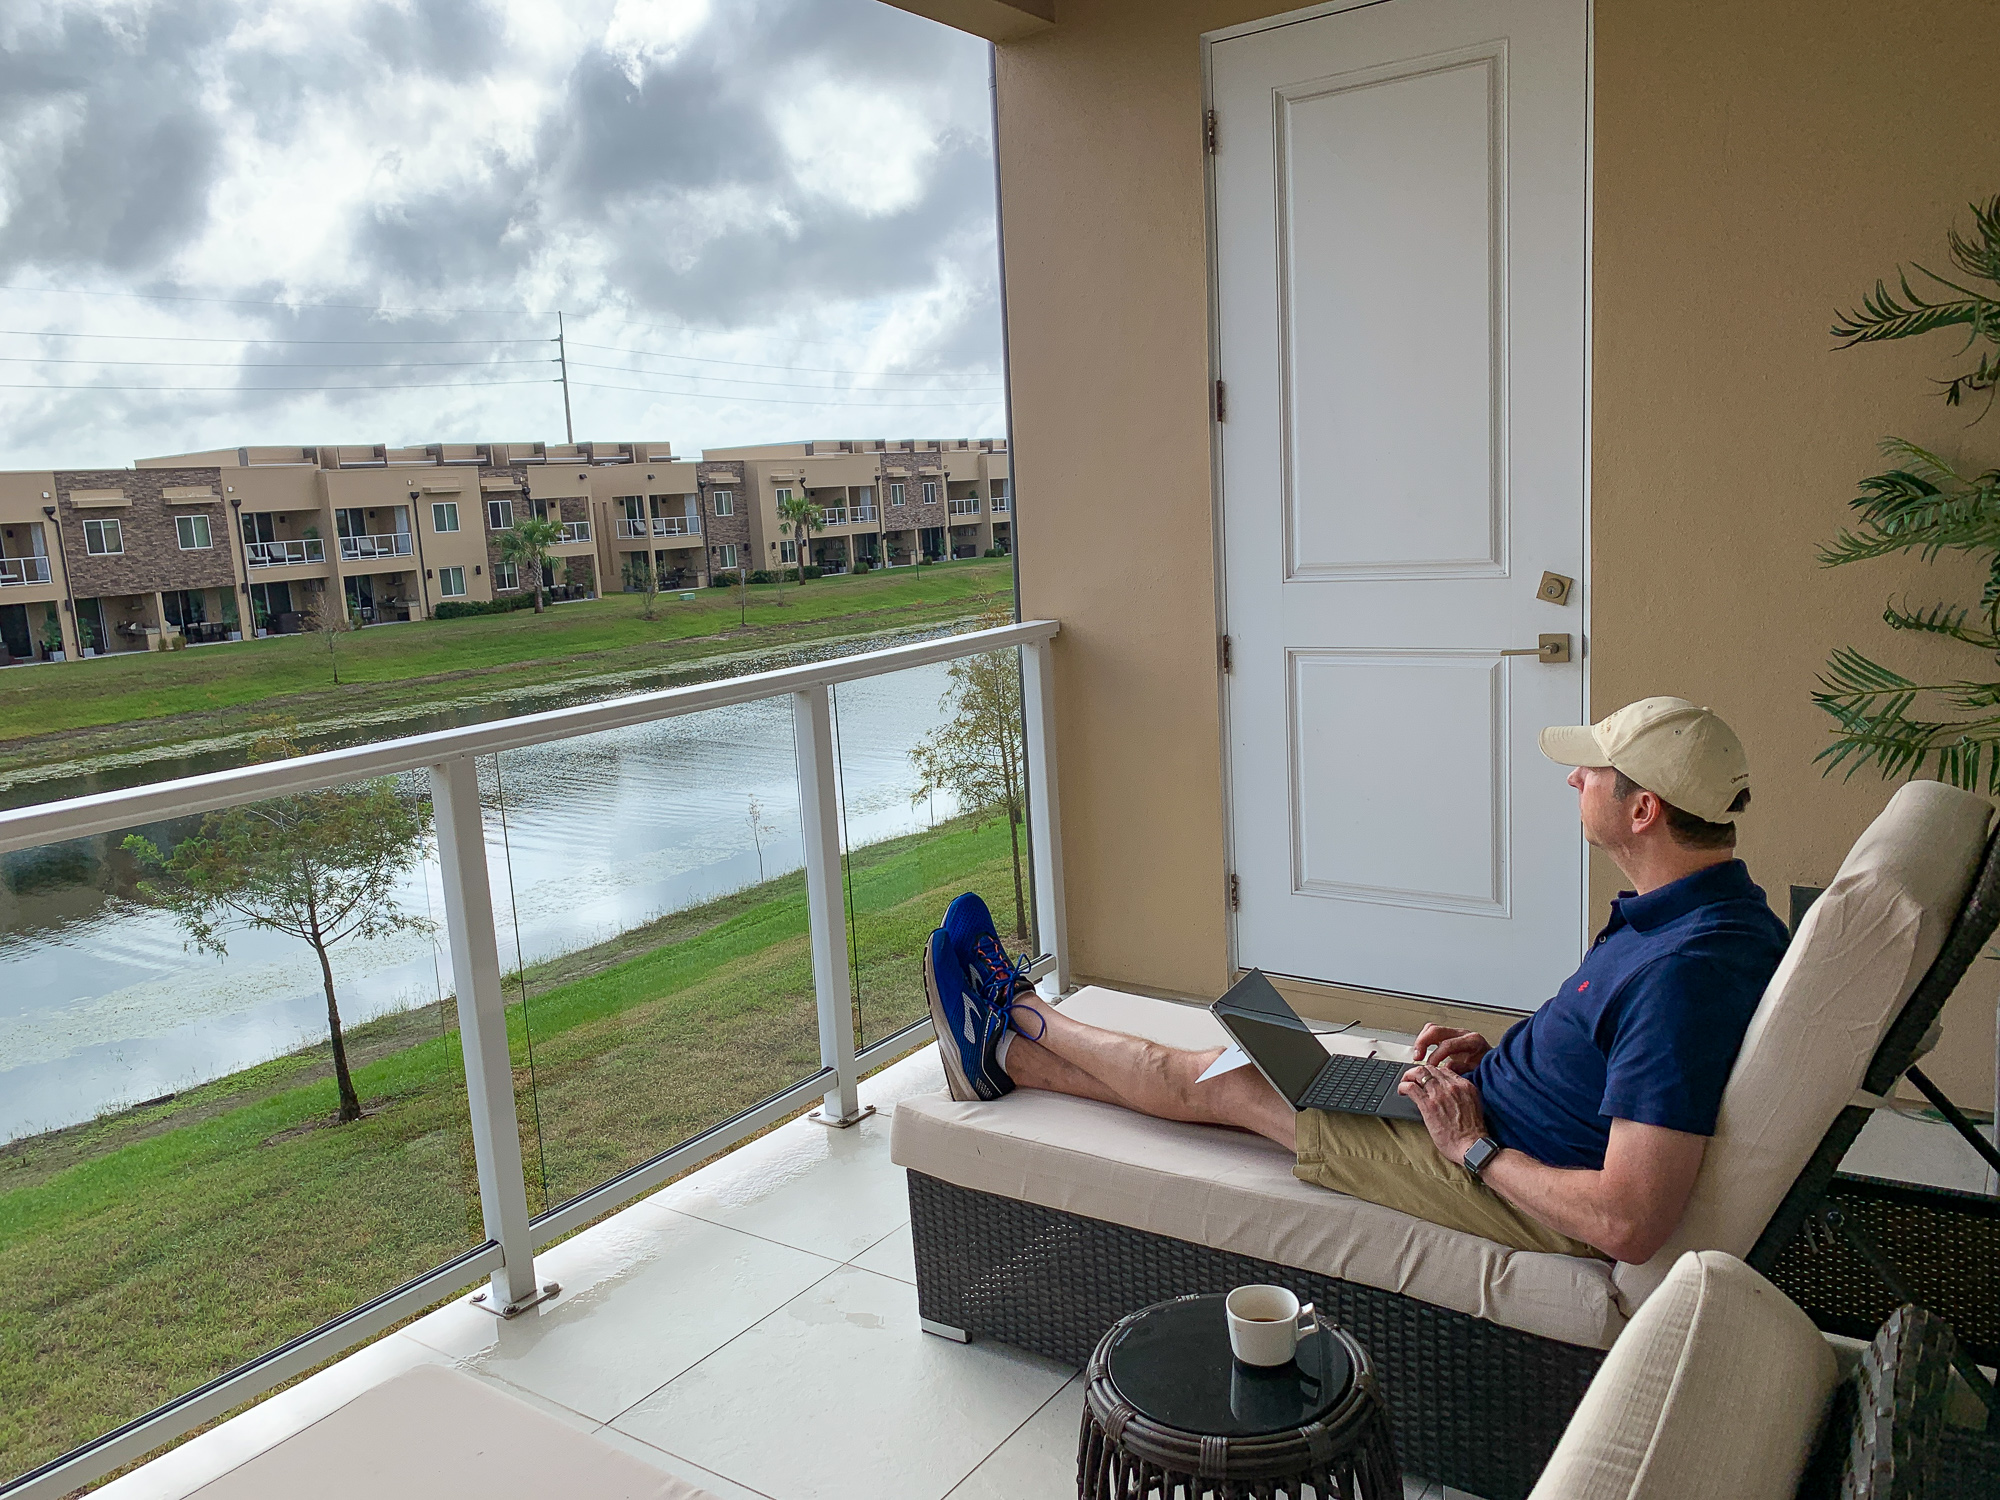 My husband relaxing on the balcony at our Magic Village vacation home